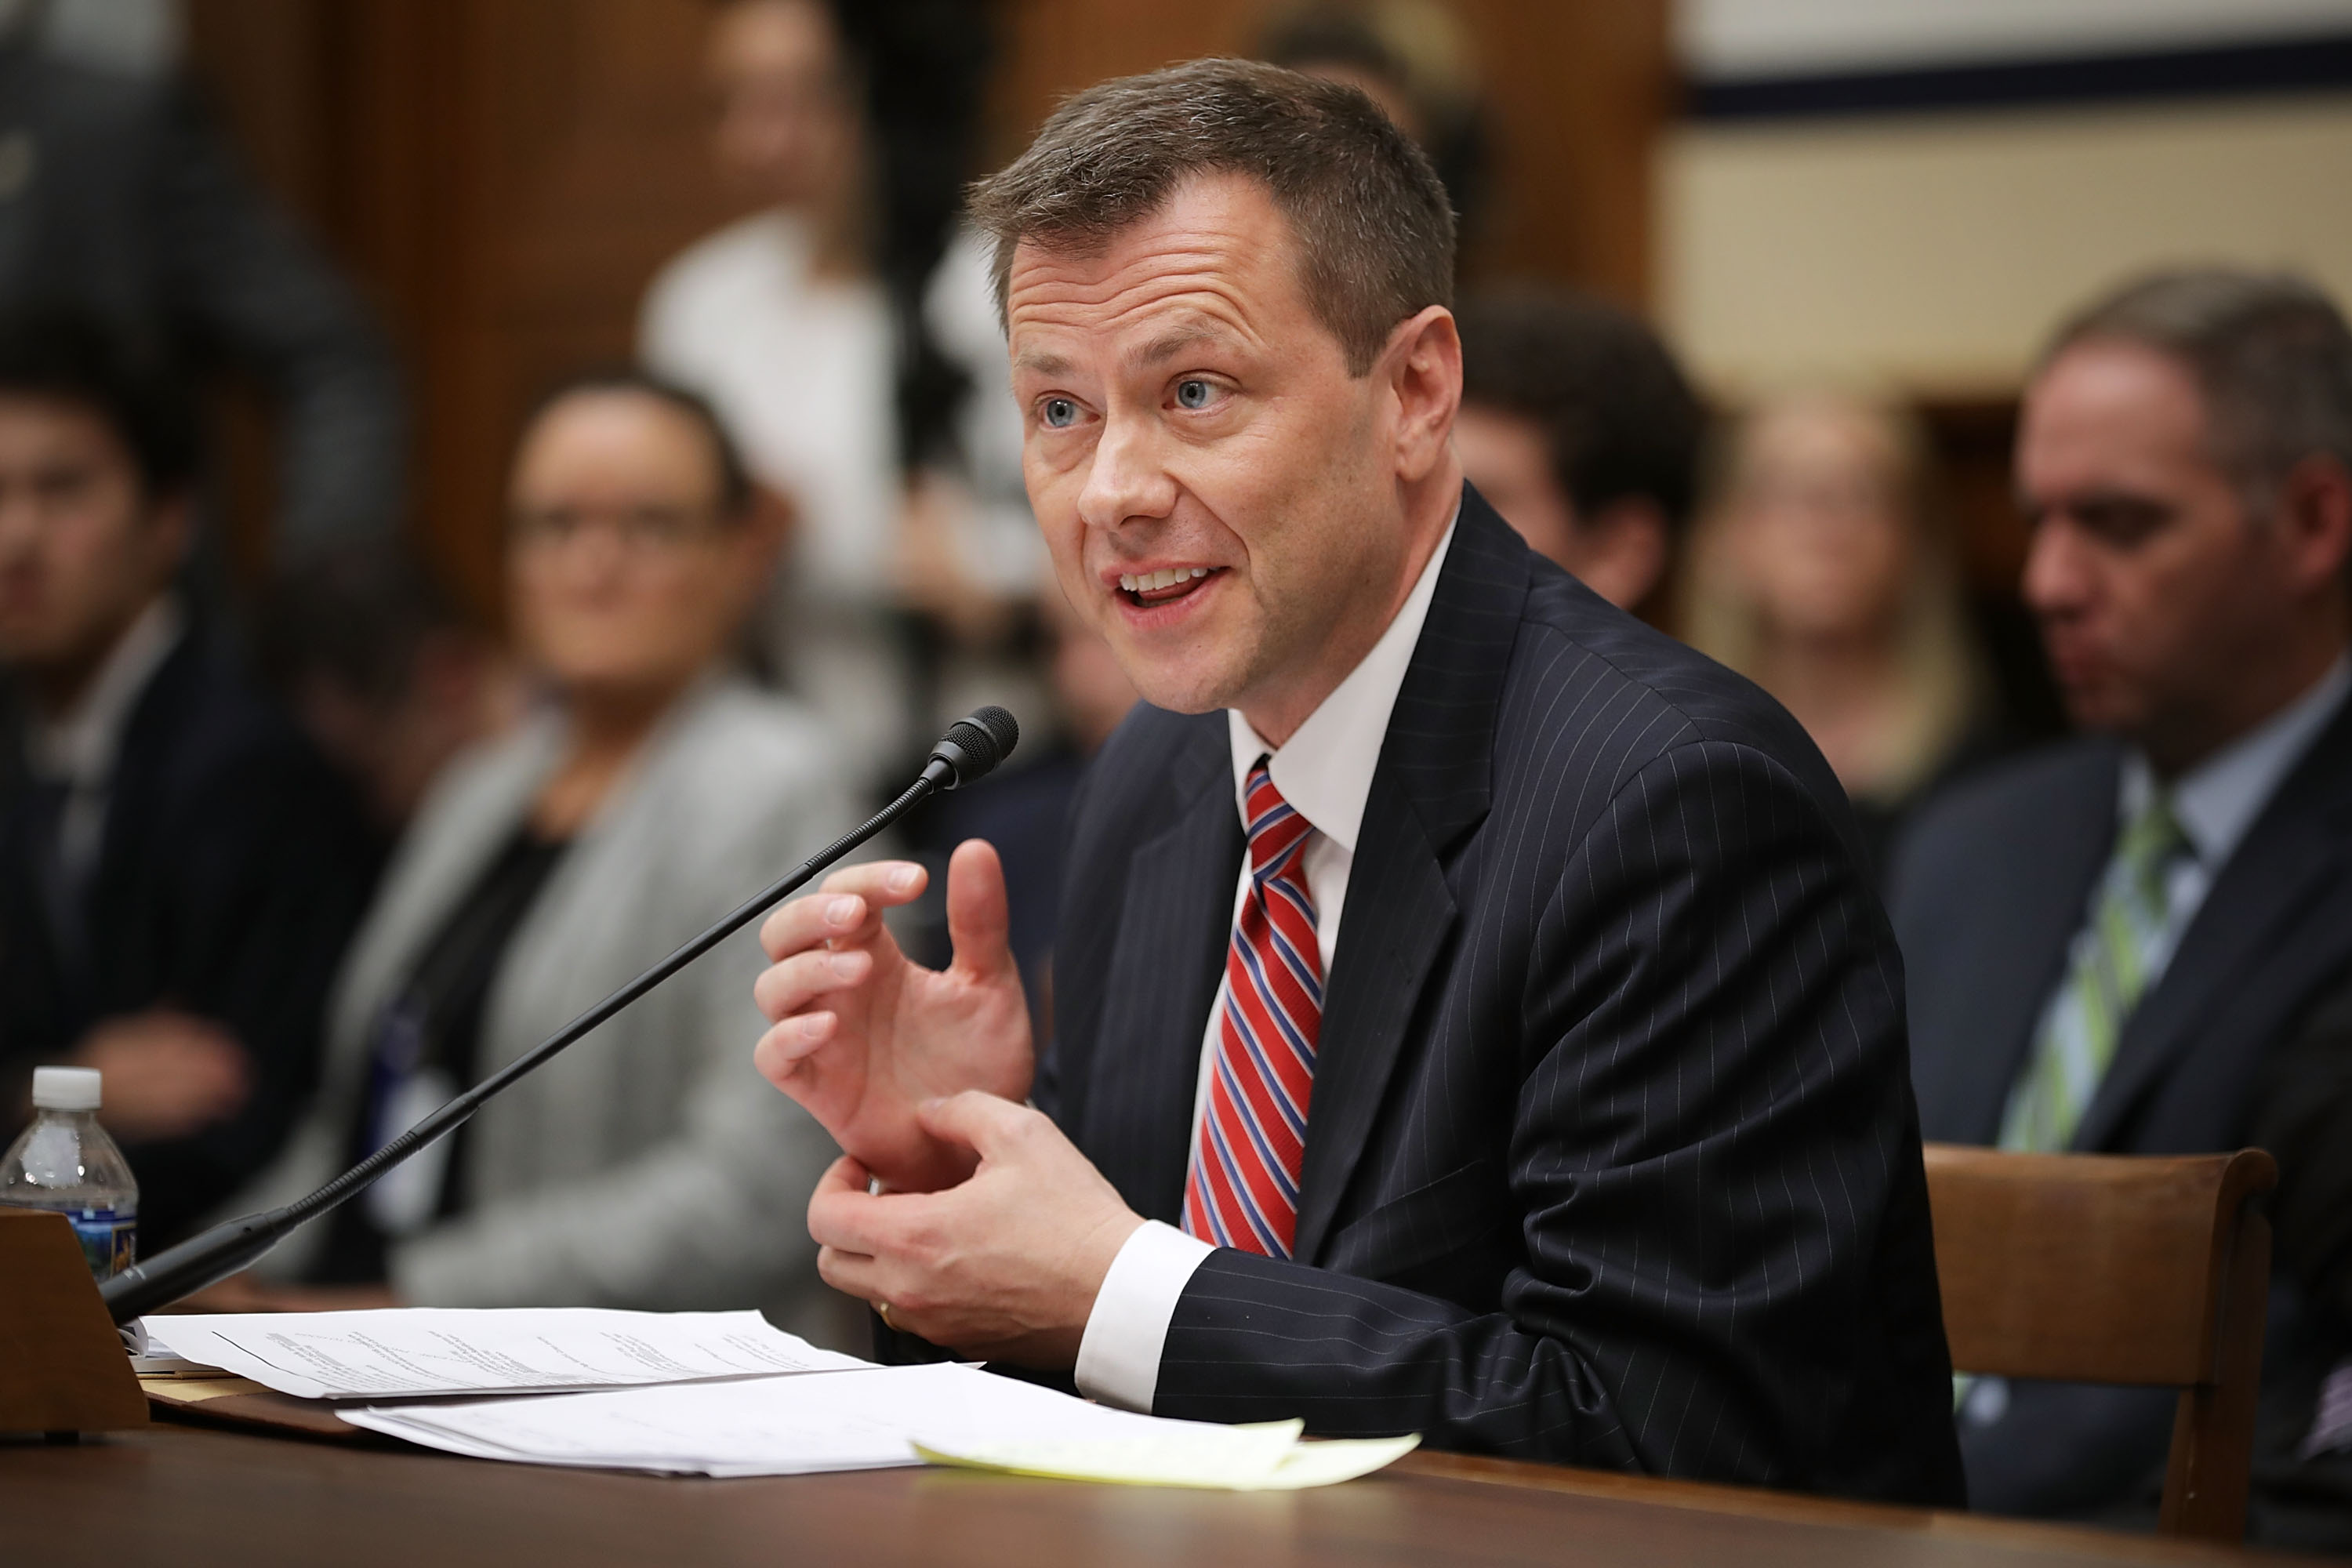 Deputy Assistant FBI Director Peter Strzok testifies before a joint committee hearing of the House Judiciary and Oversight and Government Reform committees in the Rayburn House Office Building on Capitol Hill July 12, 2018 in Washington, DC.